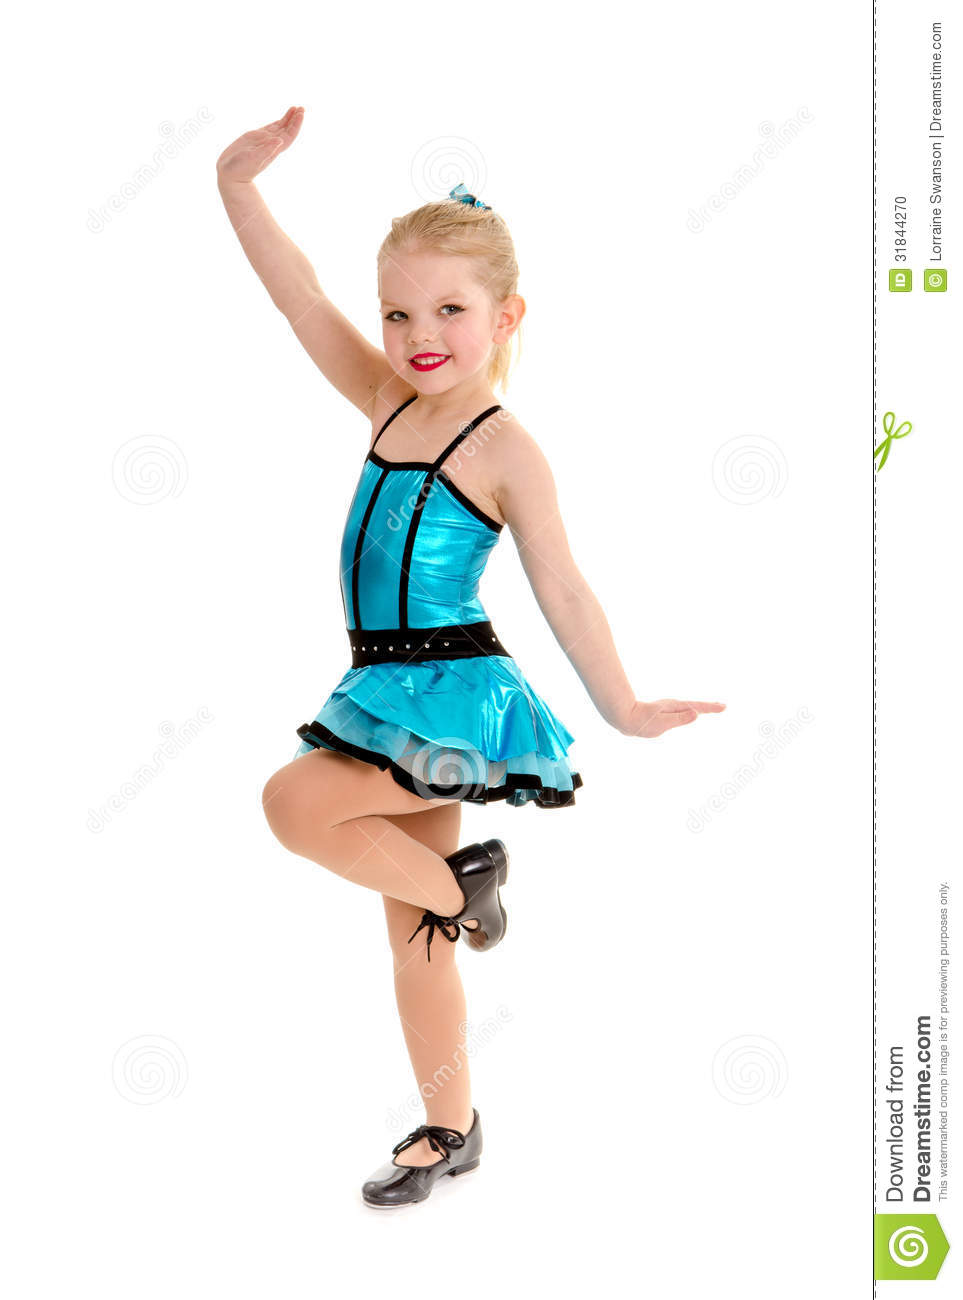 cute little girl tap dancer poses with leg lifted in tap shoes and